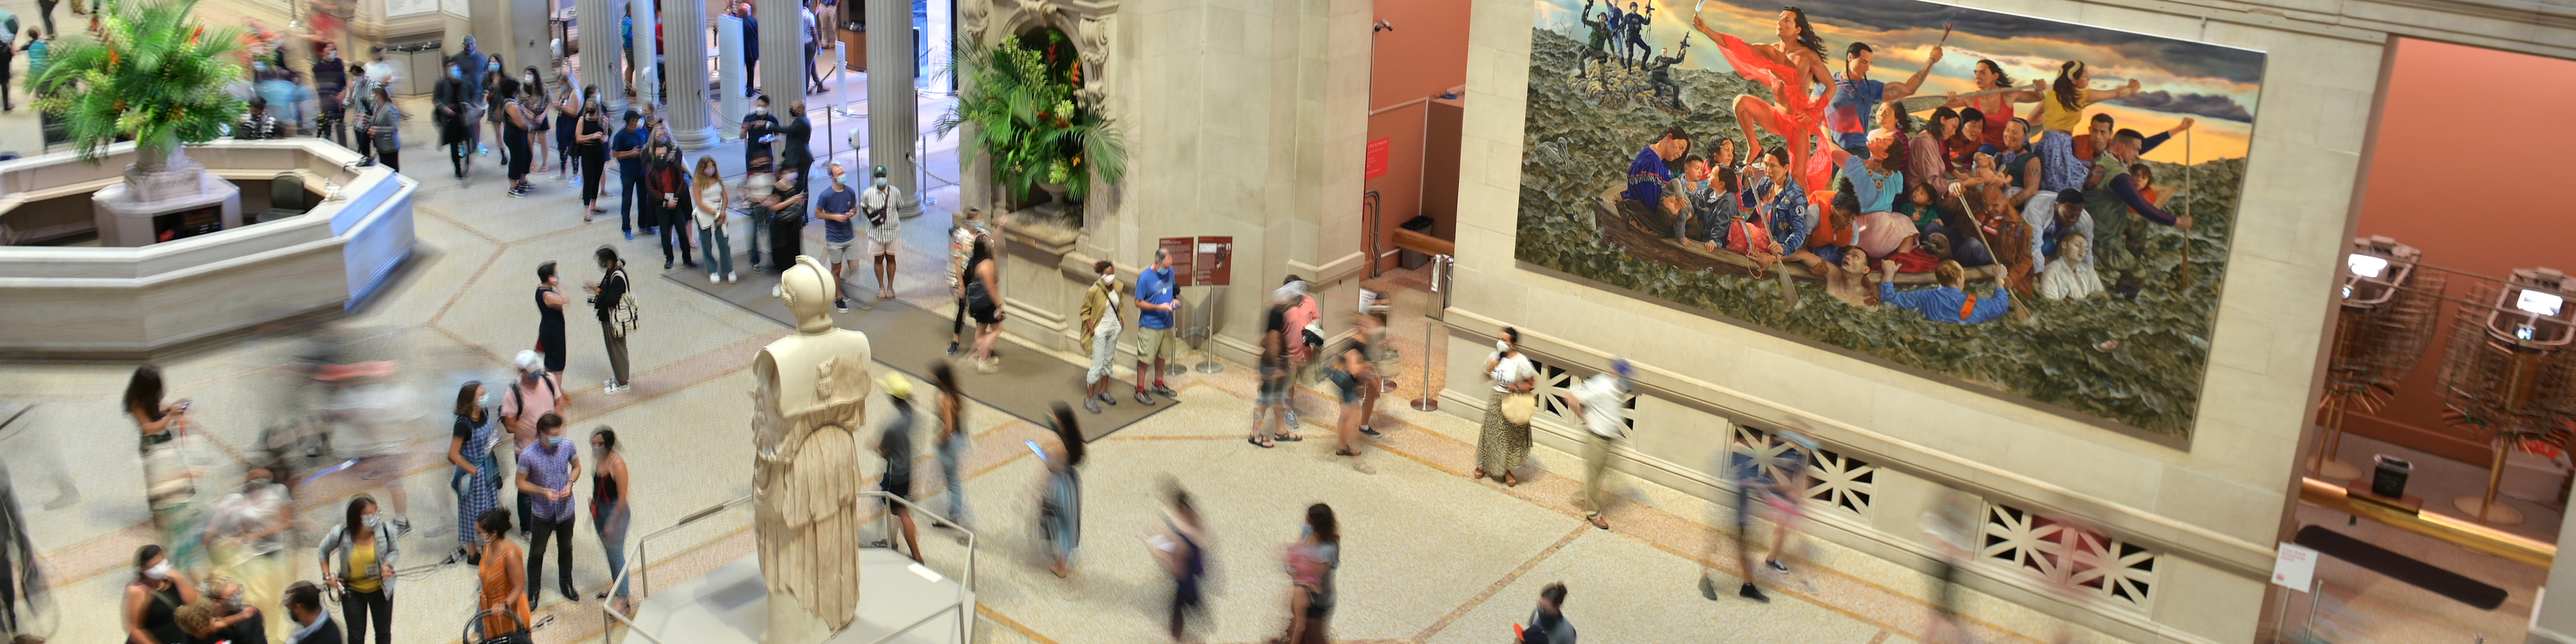 Overhead photograph of people moving around the main lobby of the metropolitan museum of art